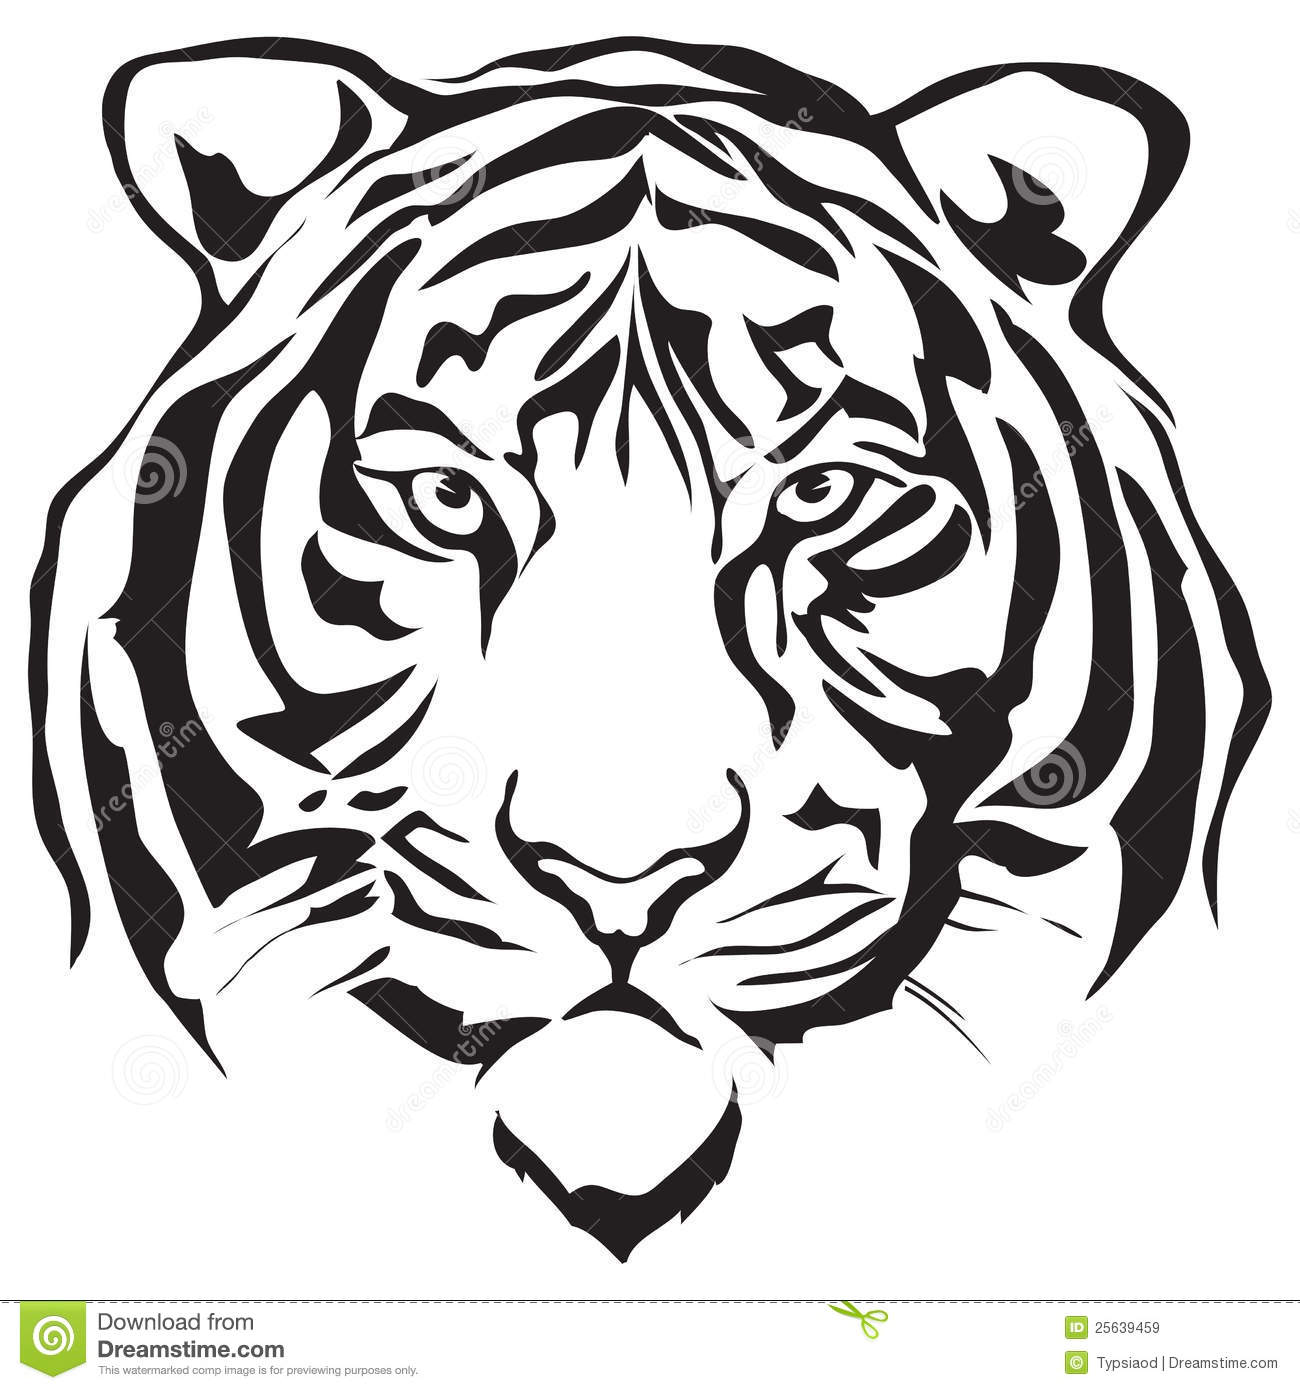 Tiiger clipart tiger face #13